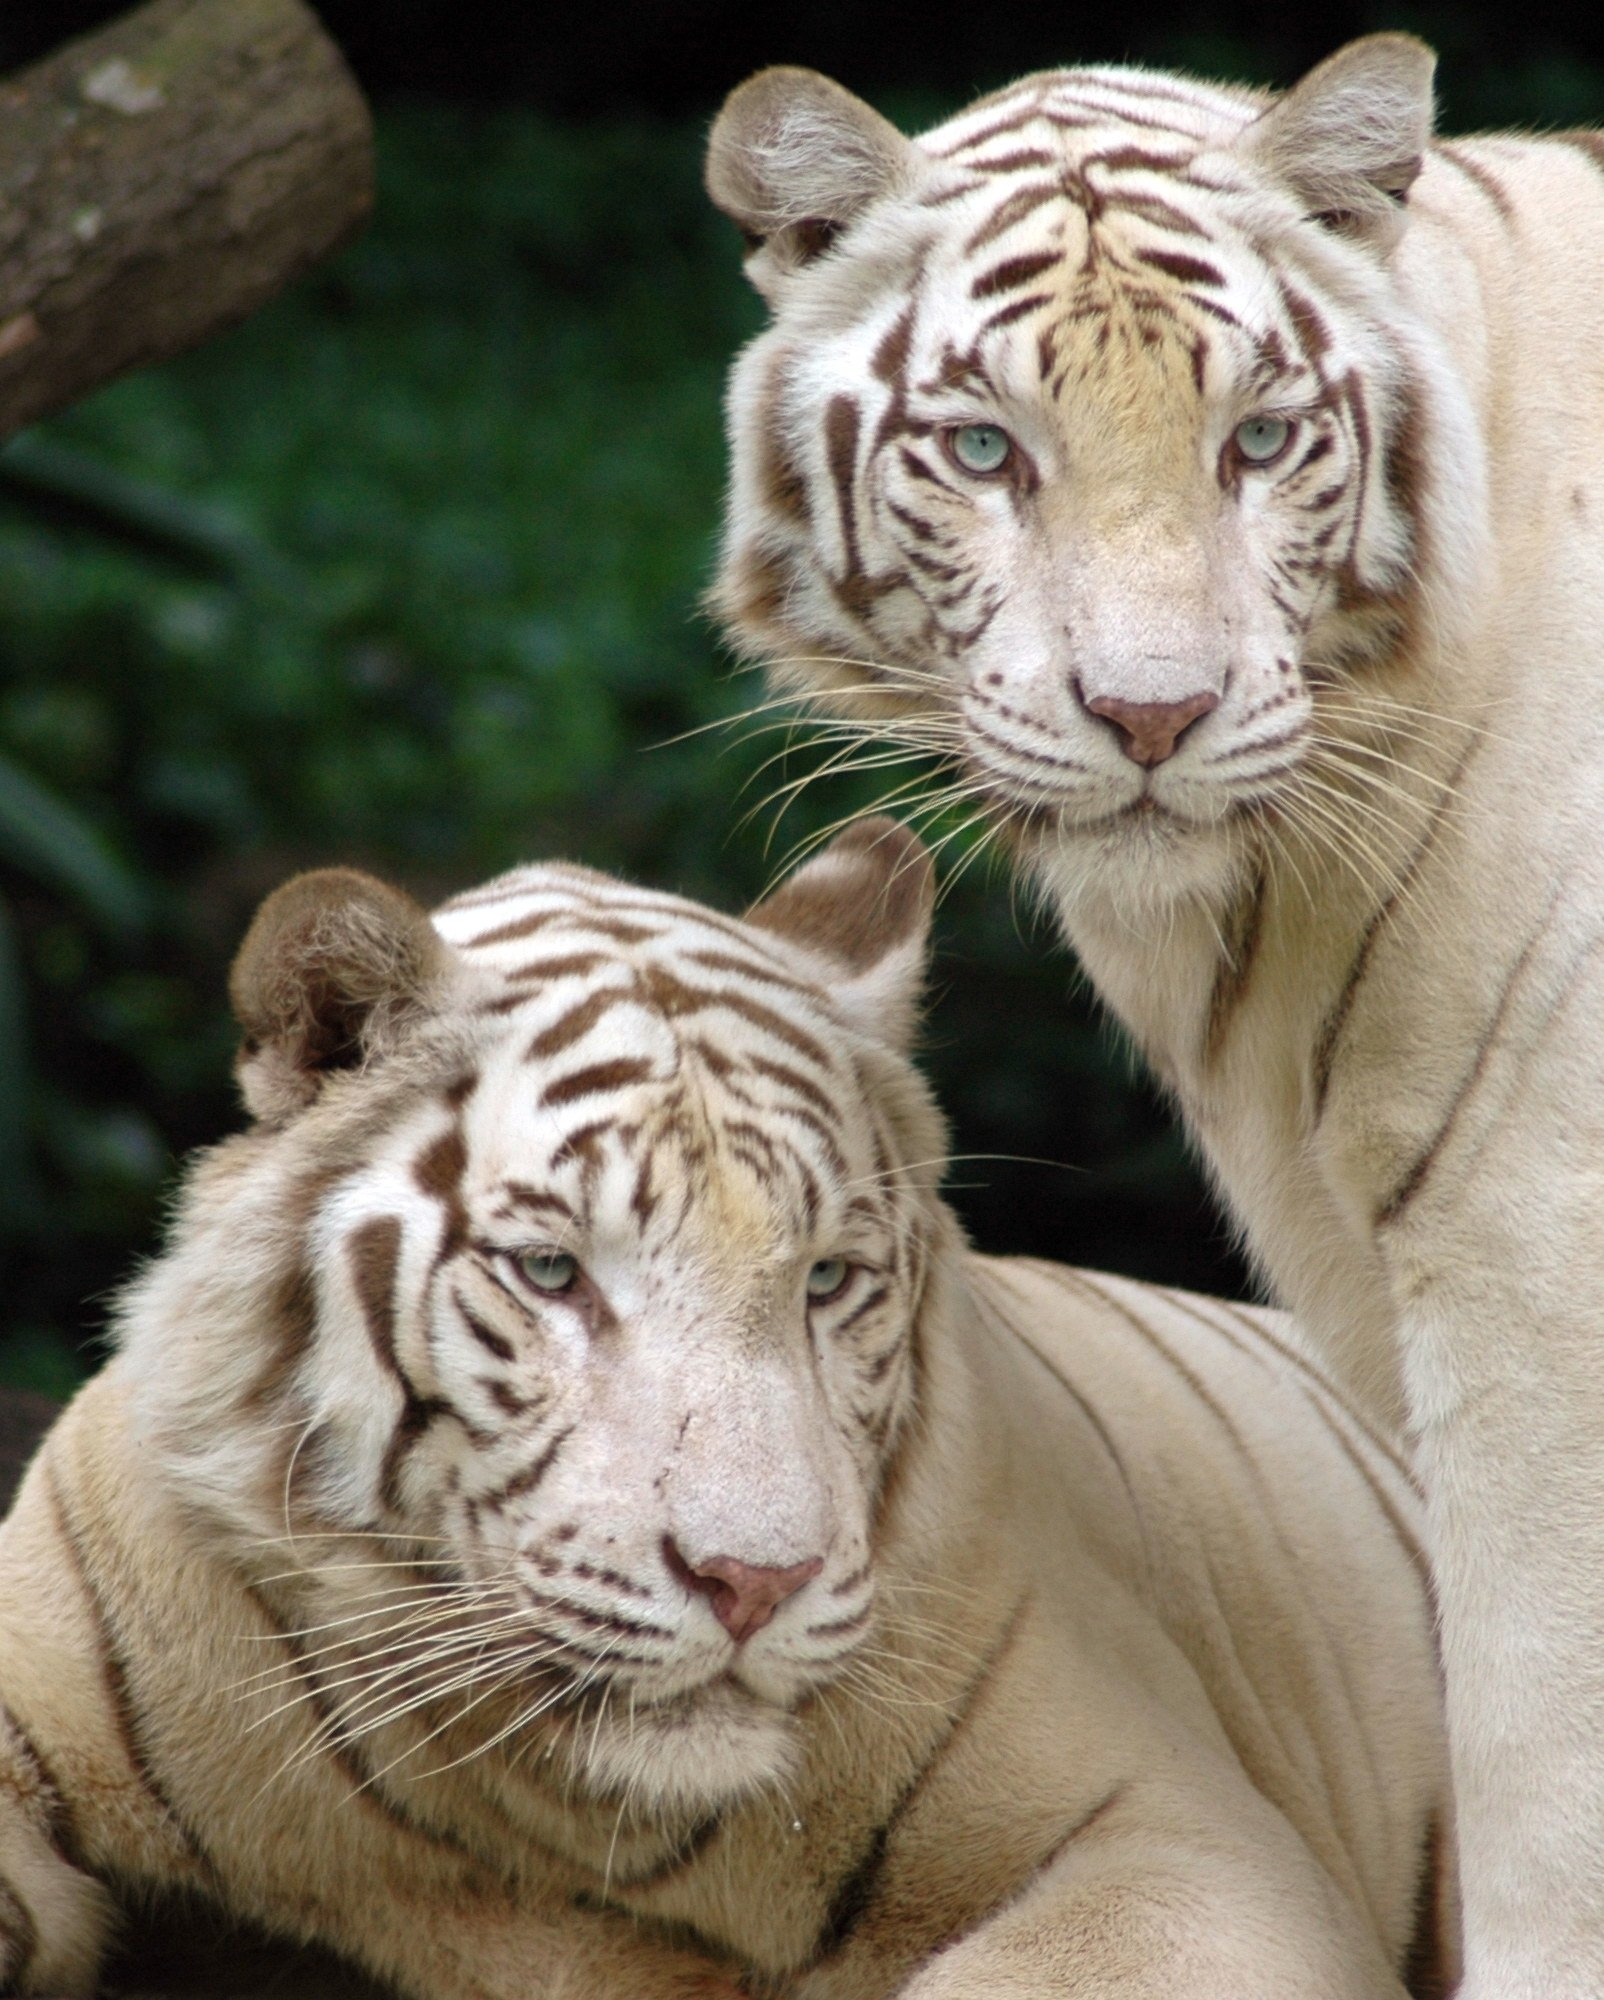 7427 download wallpaper Animals, Tigers screensavers and pictures for free